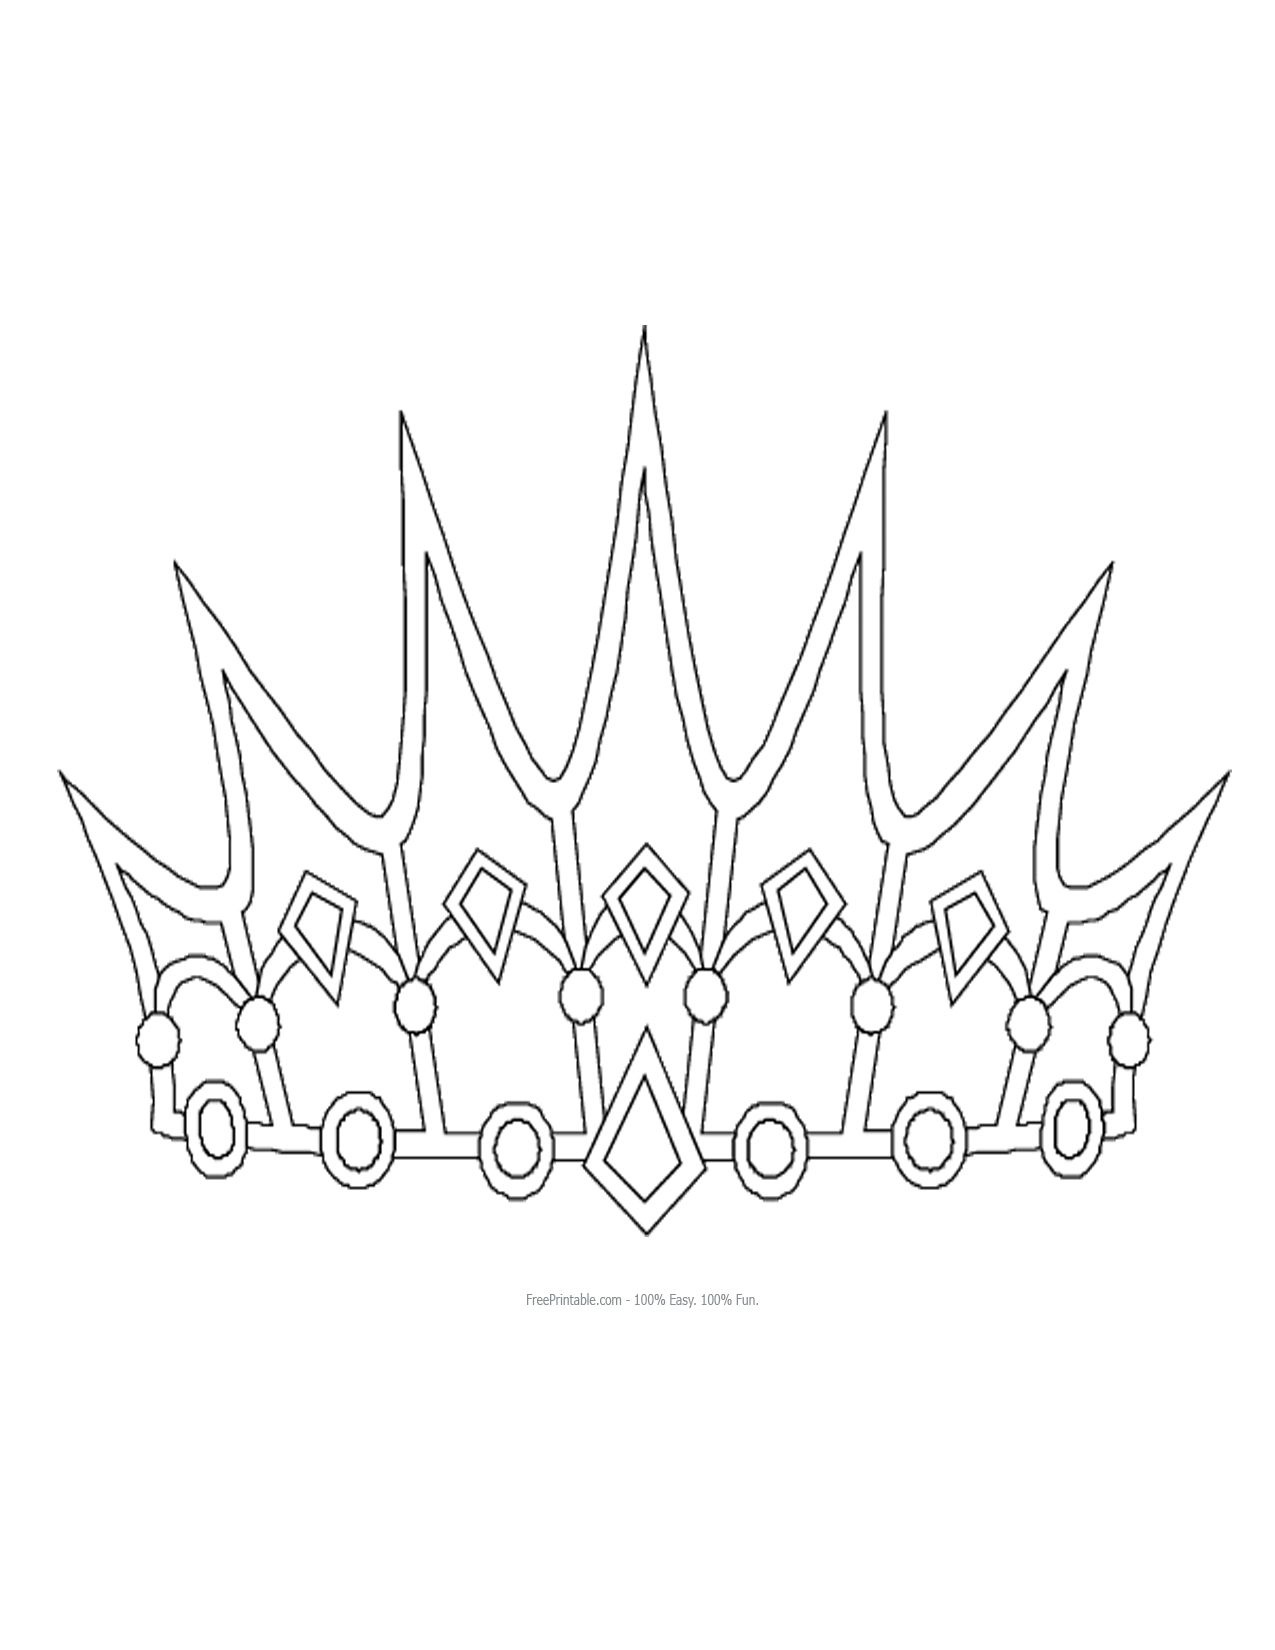 Free Printable Princess Crown Shapes | Print - Princess Crown | 3D - Free Printable Crown